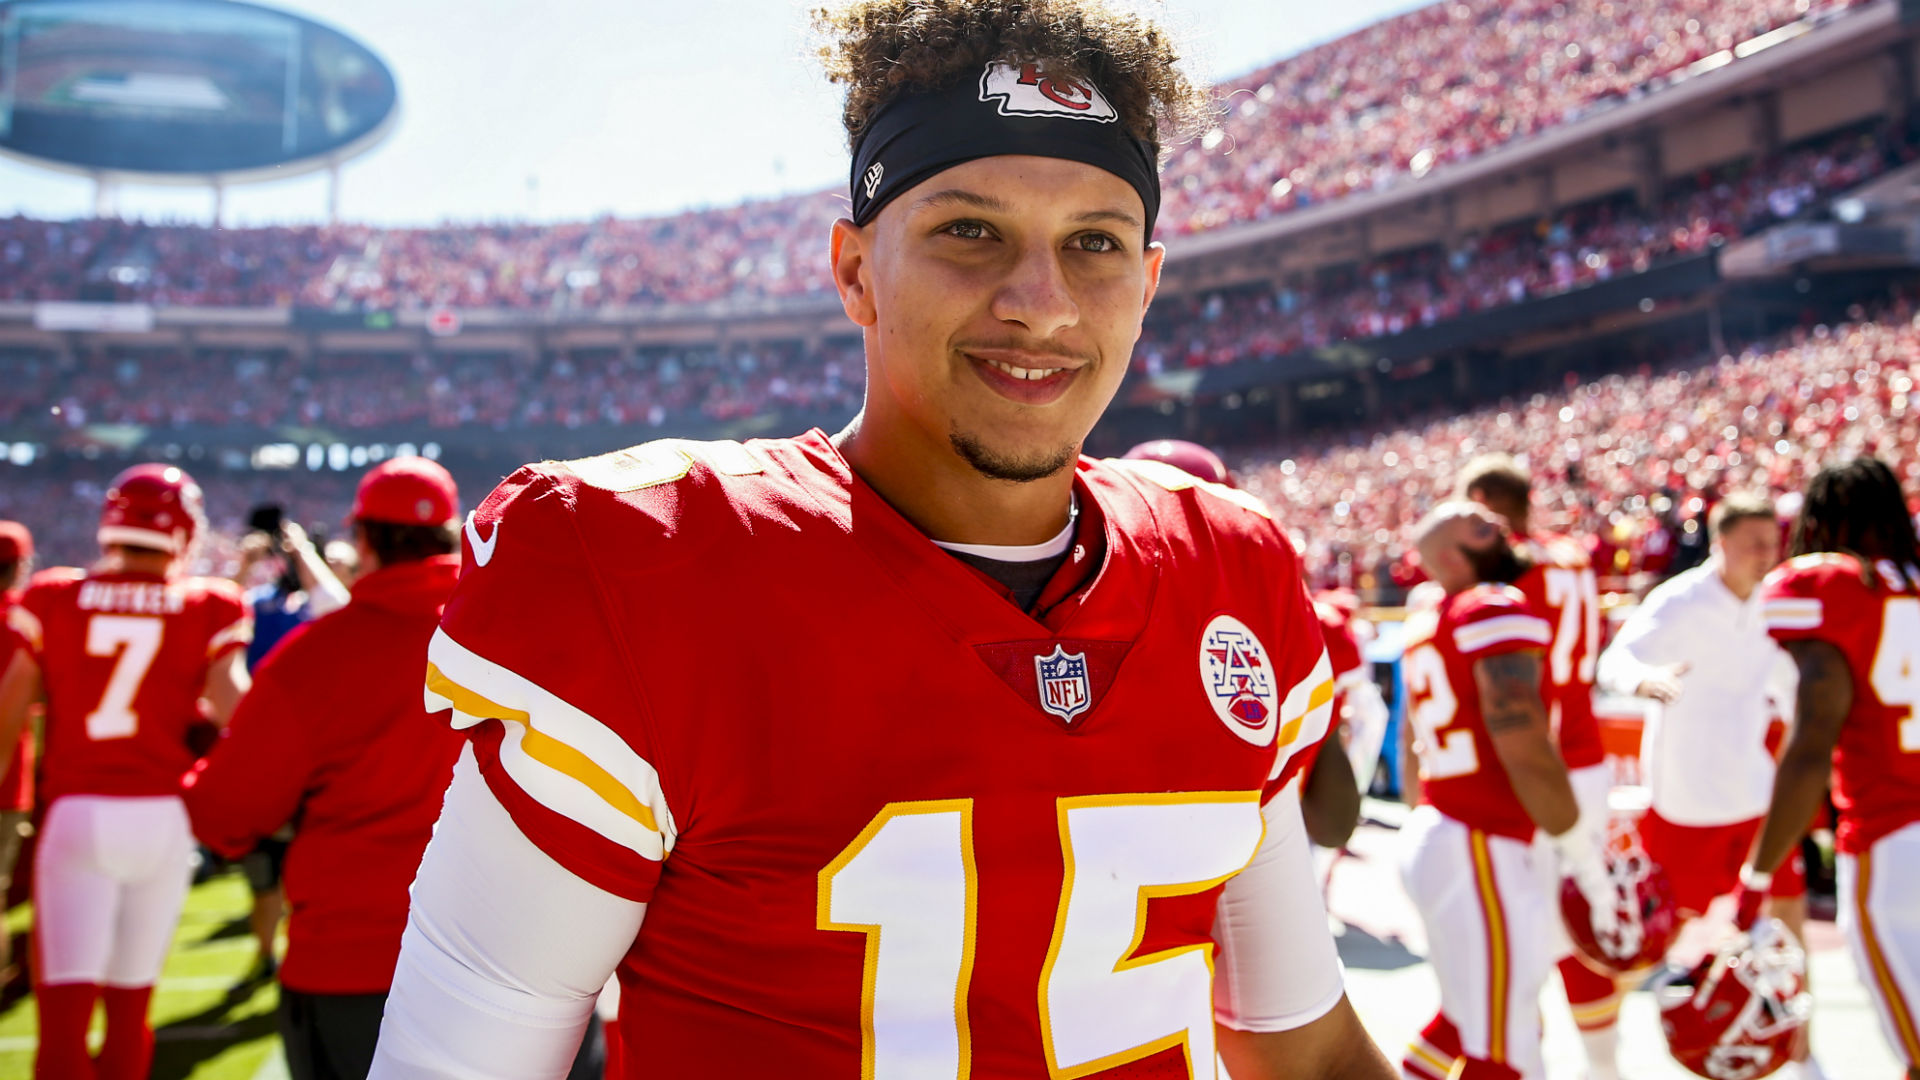 Chiefs' Patrick Mahomes has another record-breaking Sunday ...